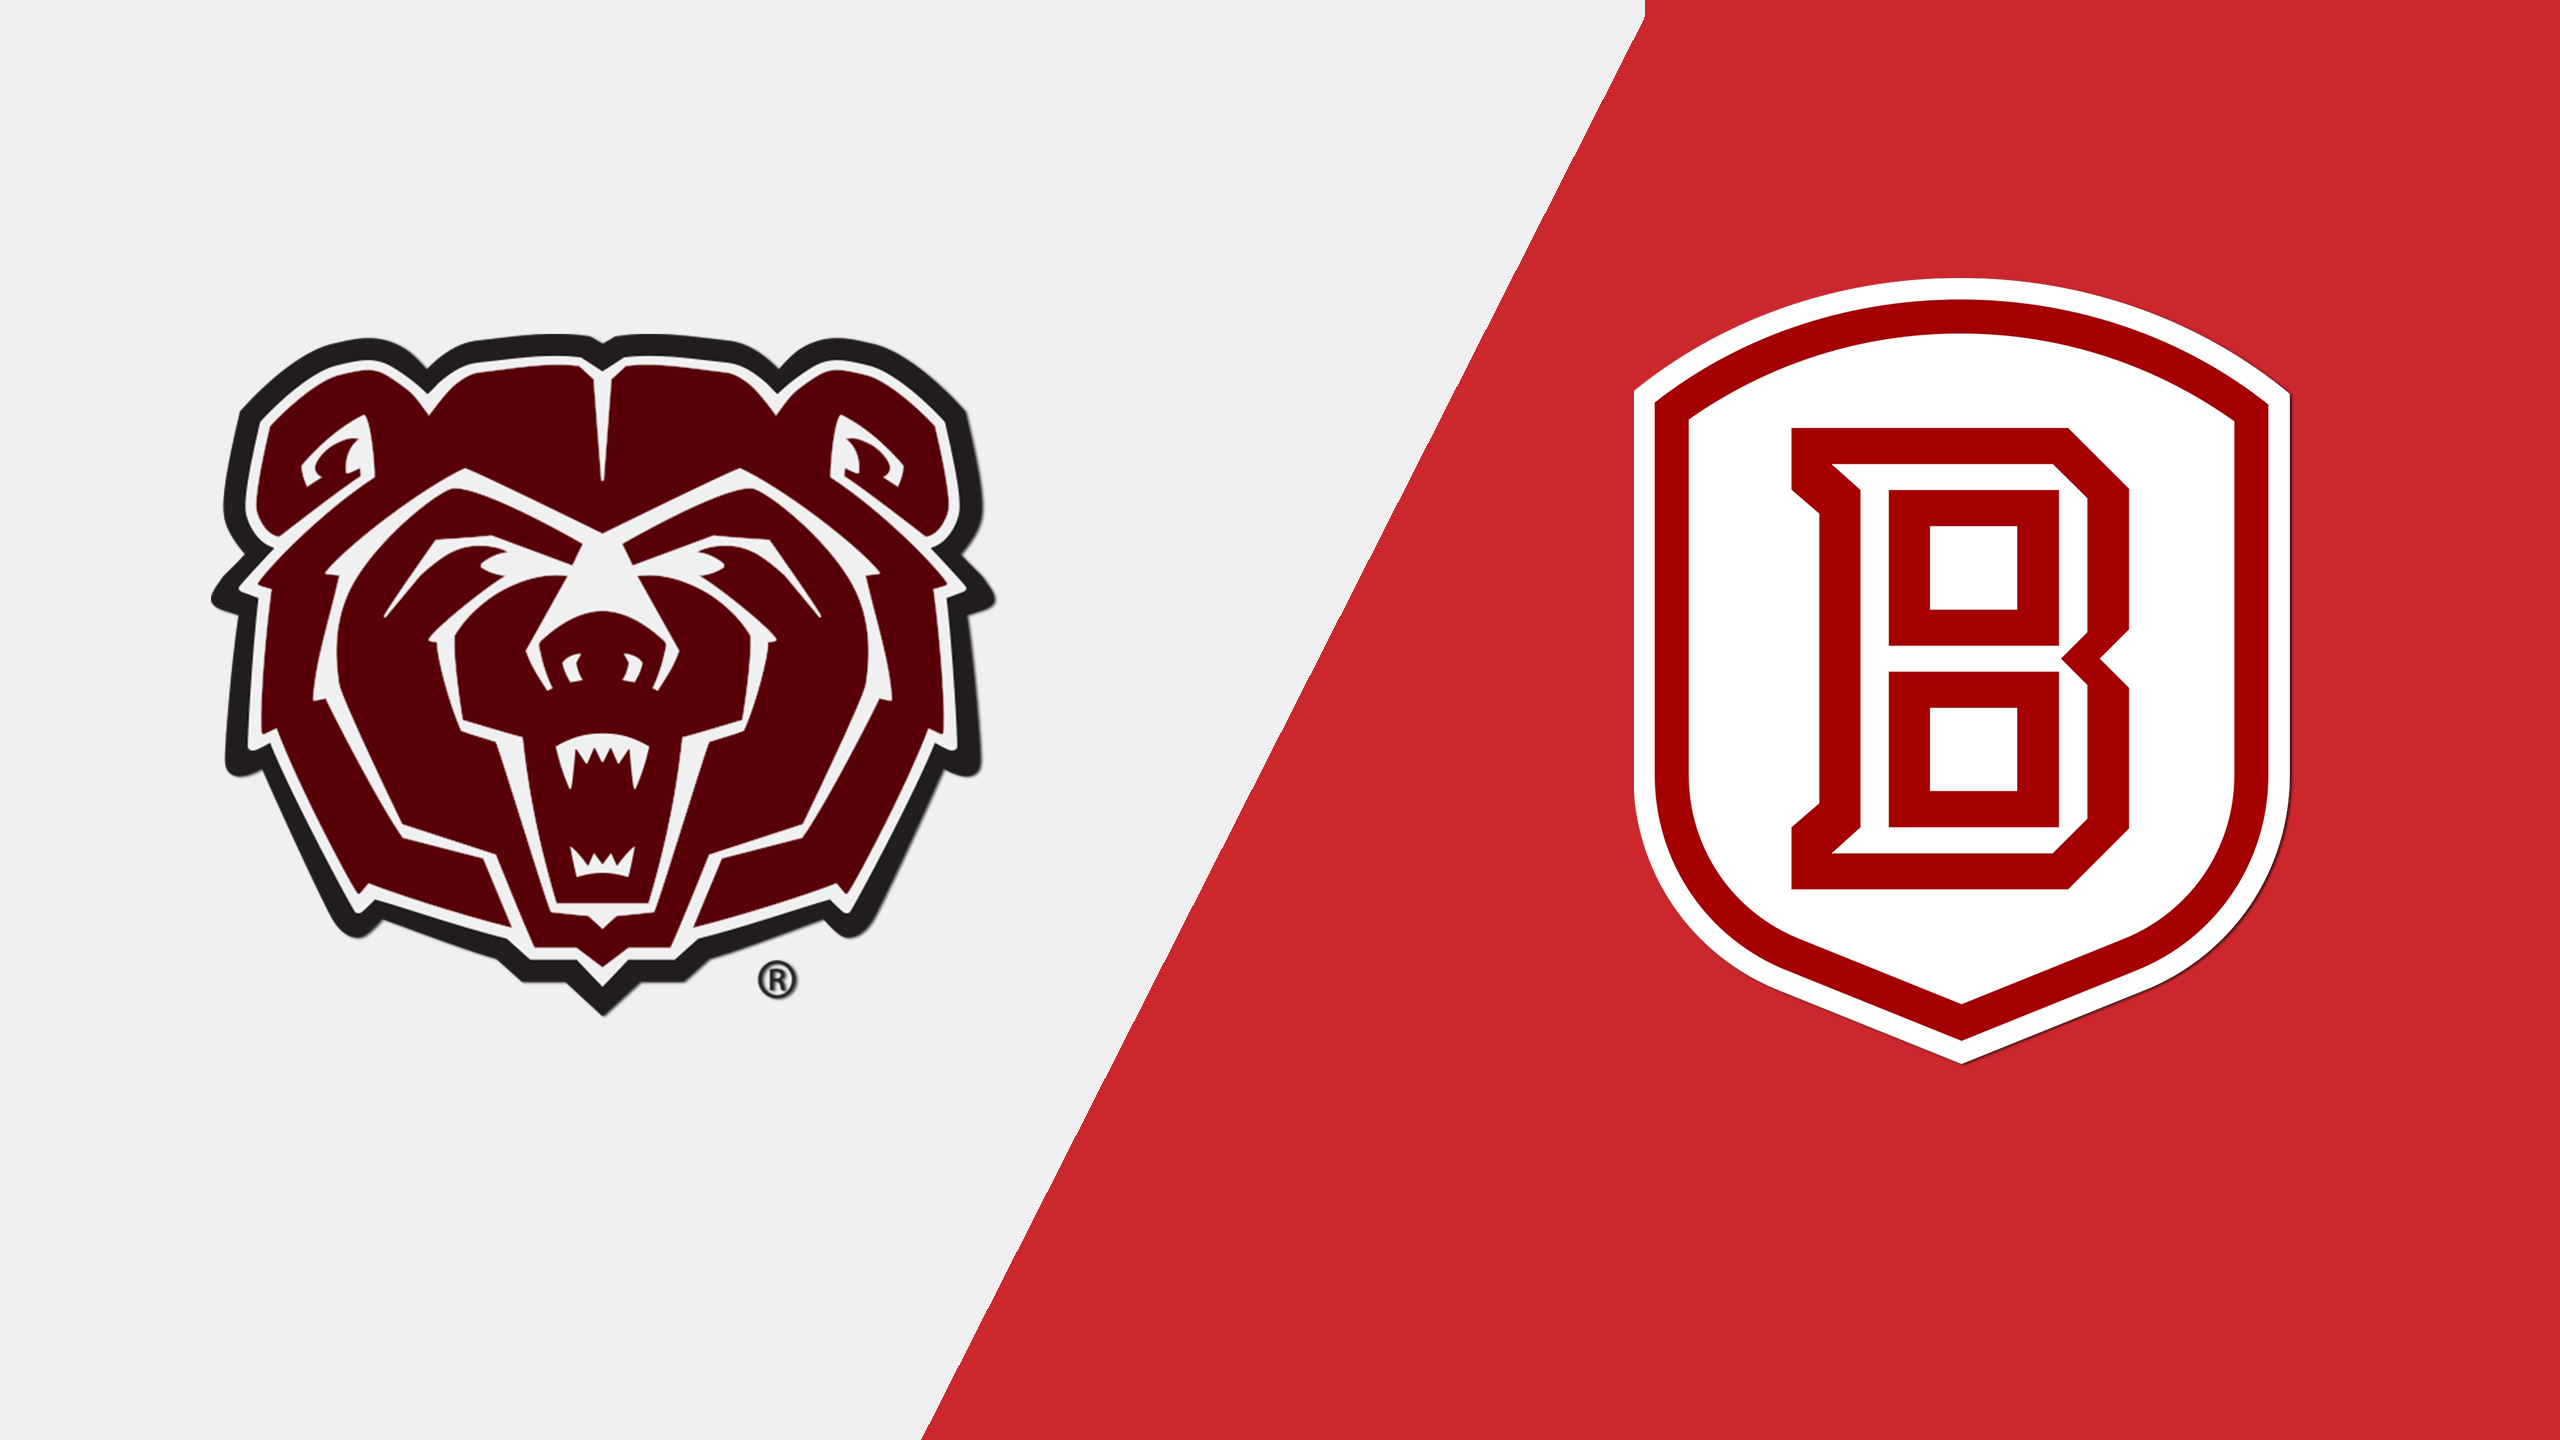 Missouri State vs. Bradley (W Basketball)